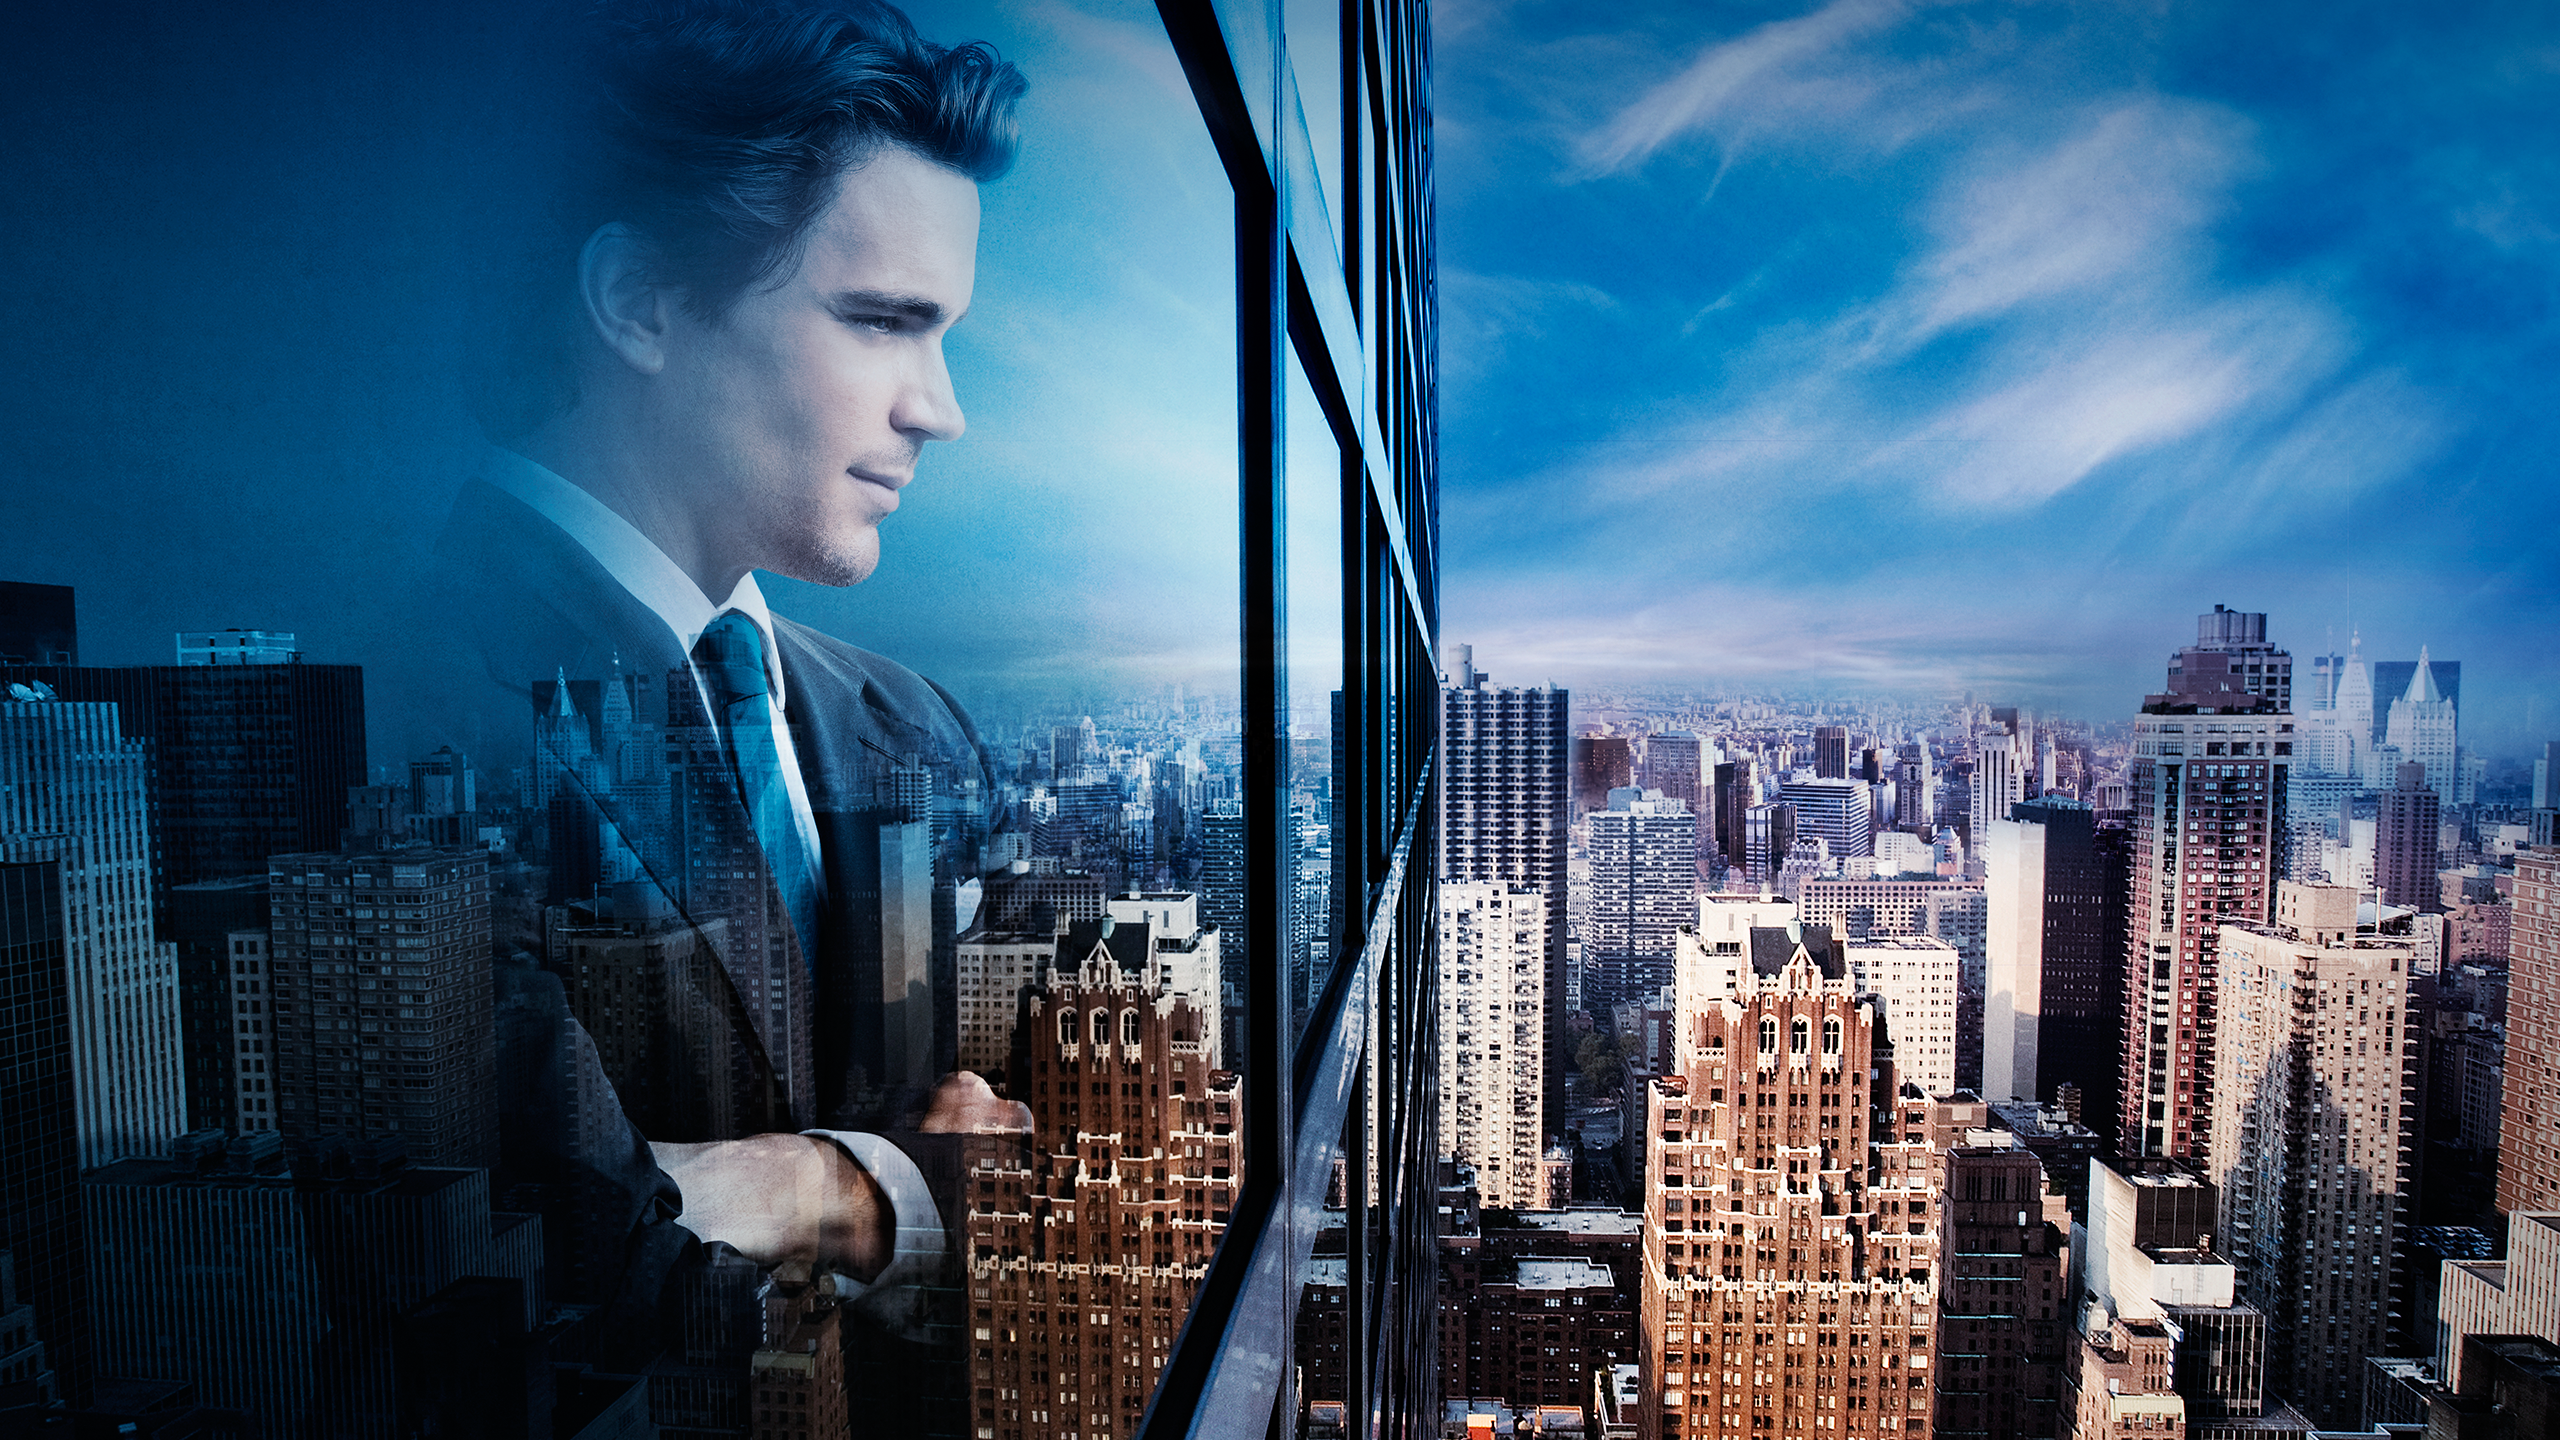 HQ White Collar Wallpapers | File 6392.81Kb